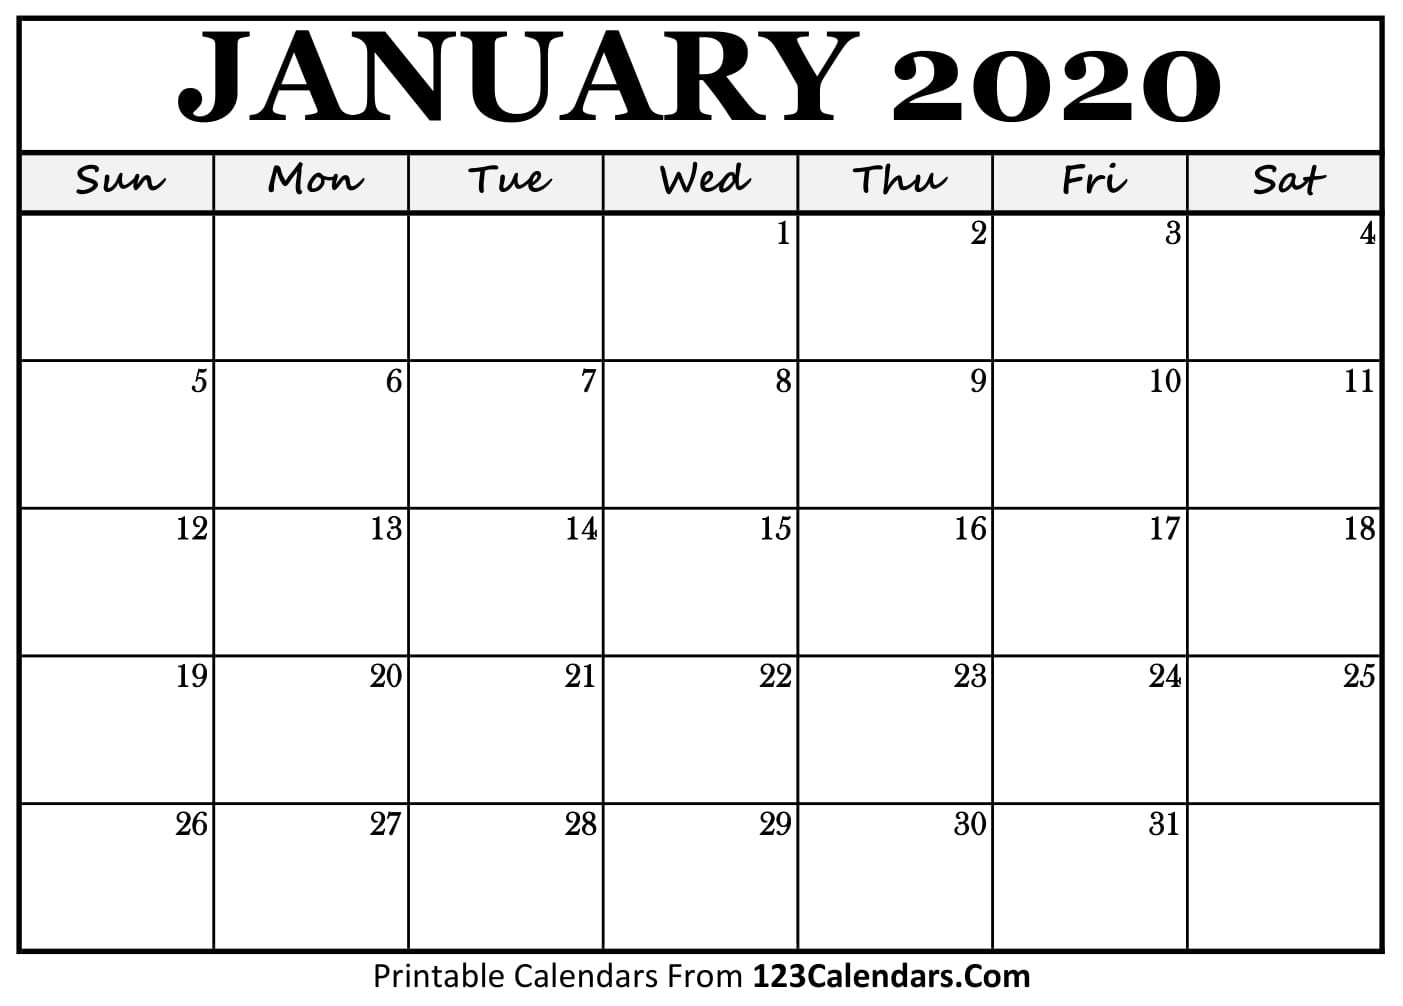 Free Printable Calendar | 123Calendars-Monthly Calendars 2020 Printable Free 2-Pages Blank